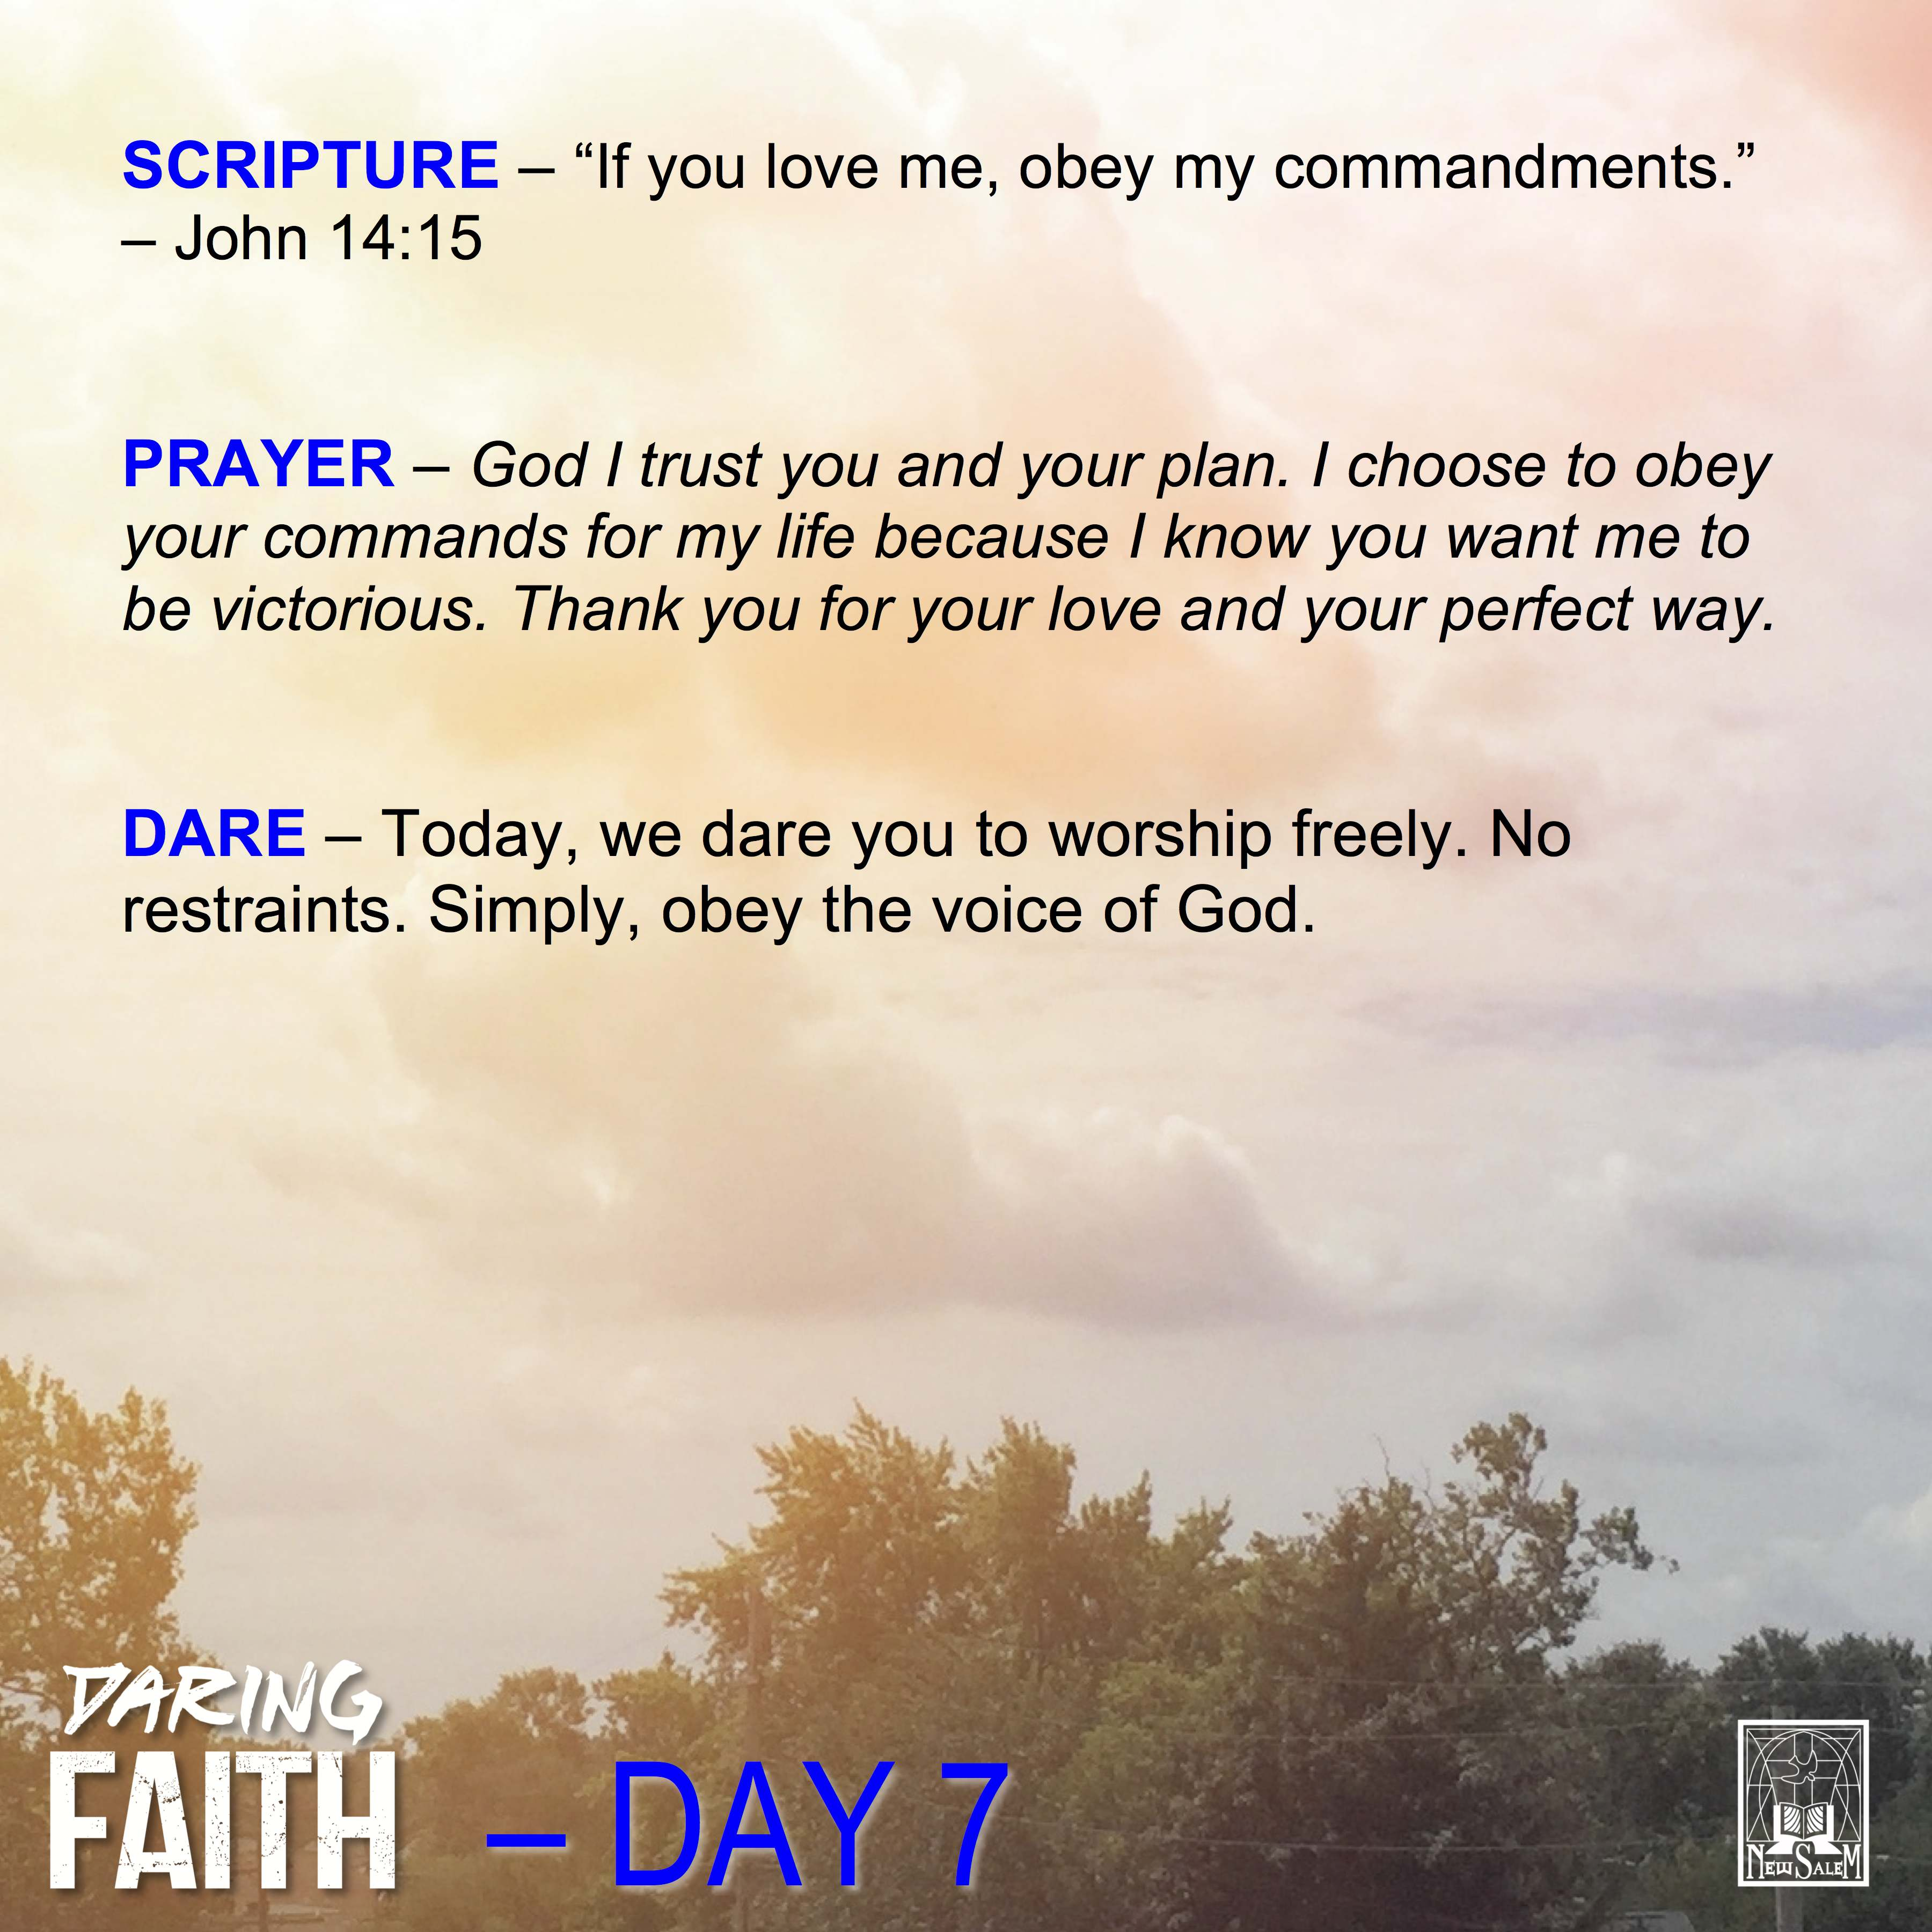 Daring Faith Devotional - Day 7